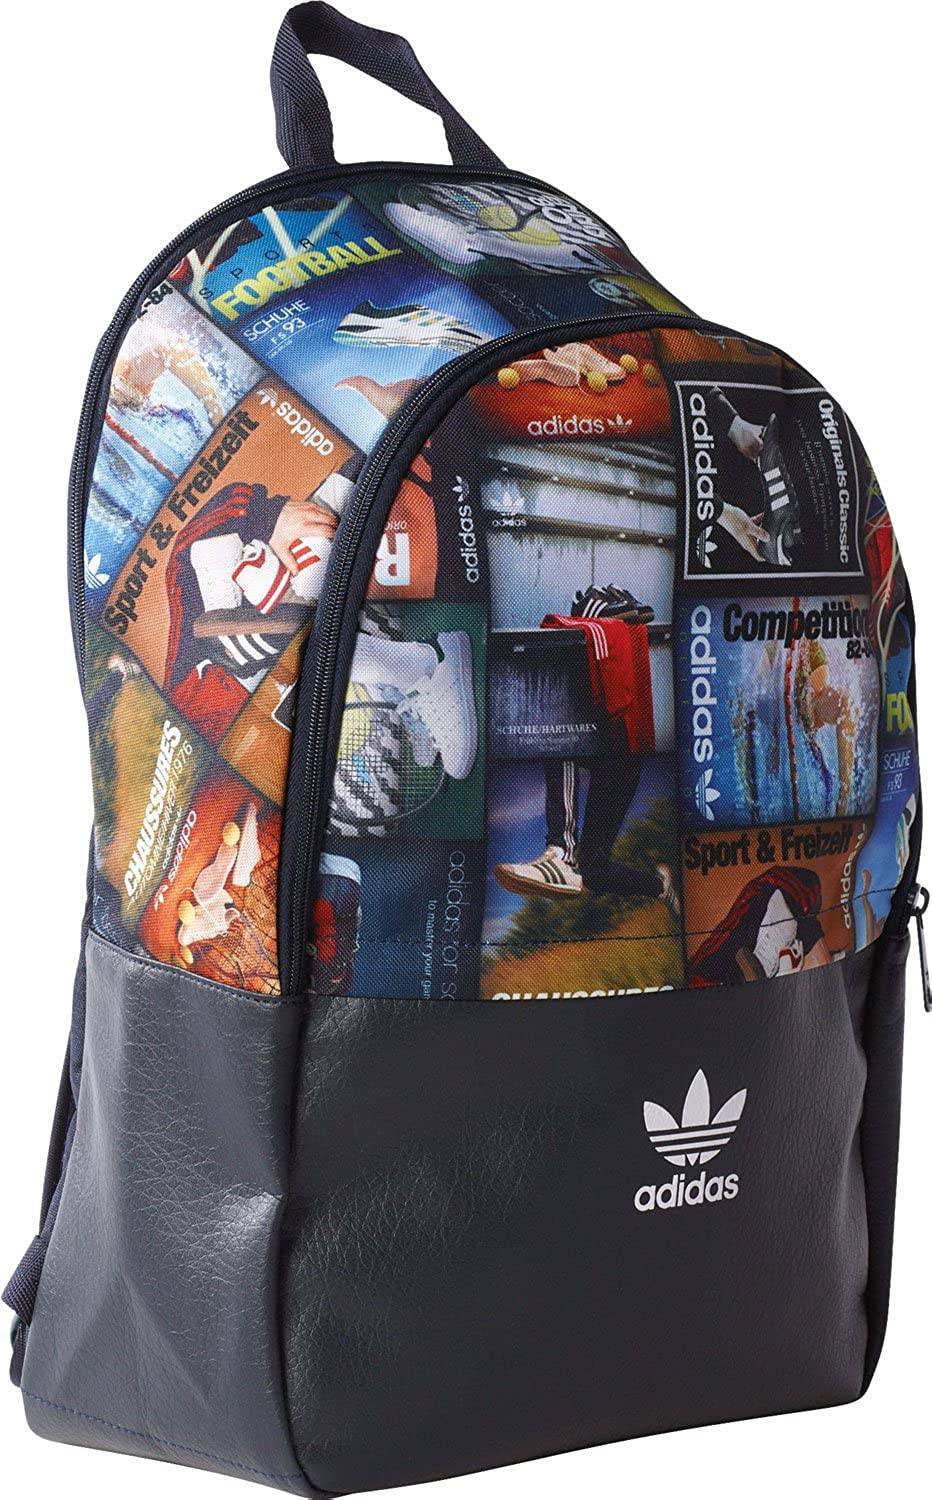 Adidas 3 Pocket Hombre Backpack Negro